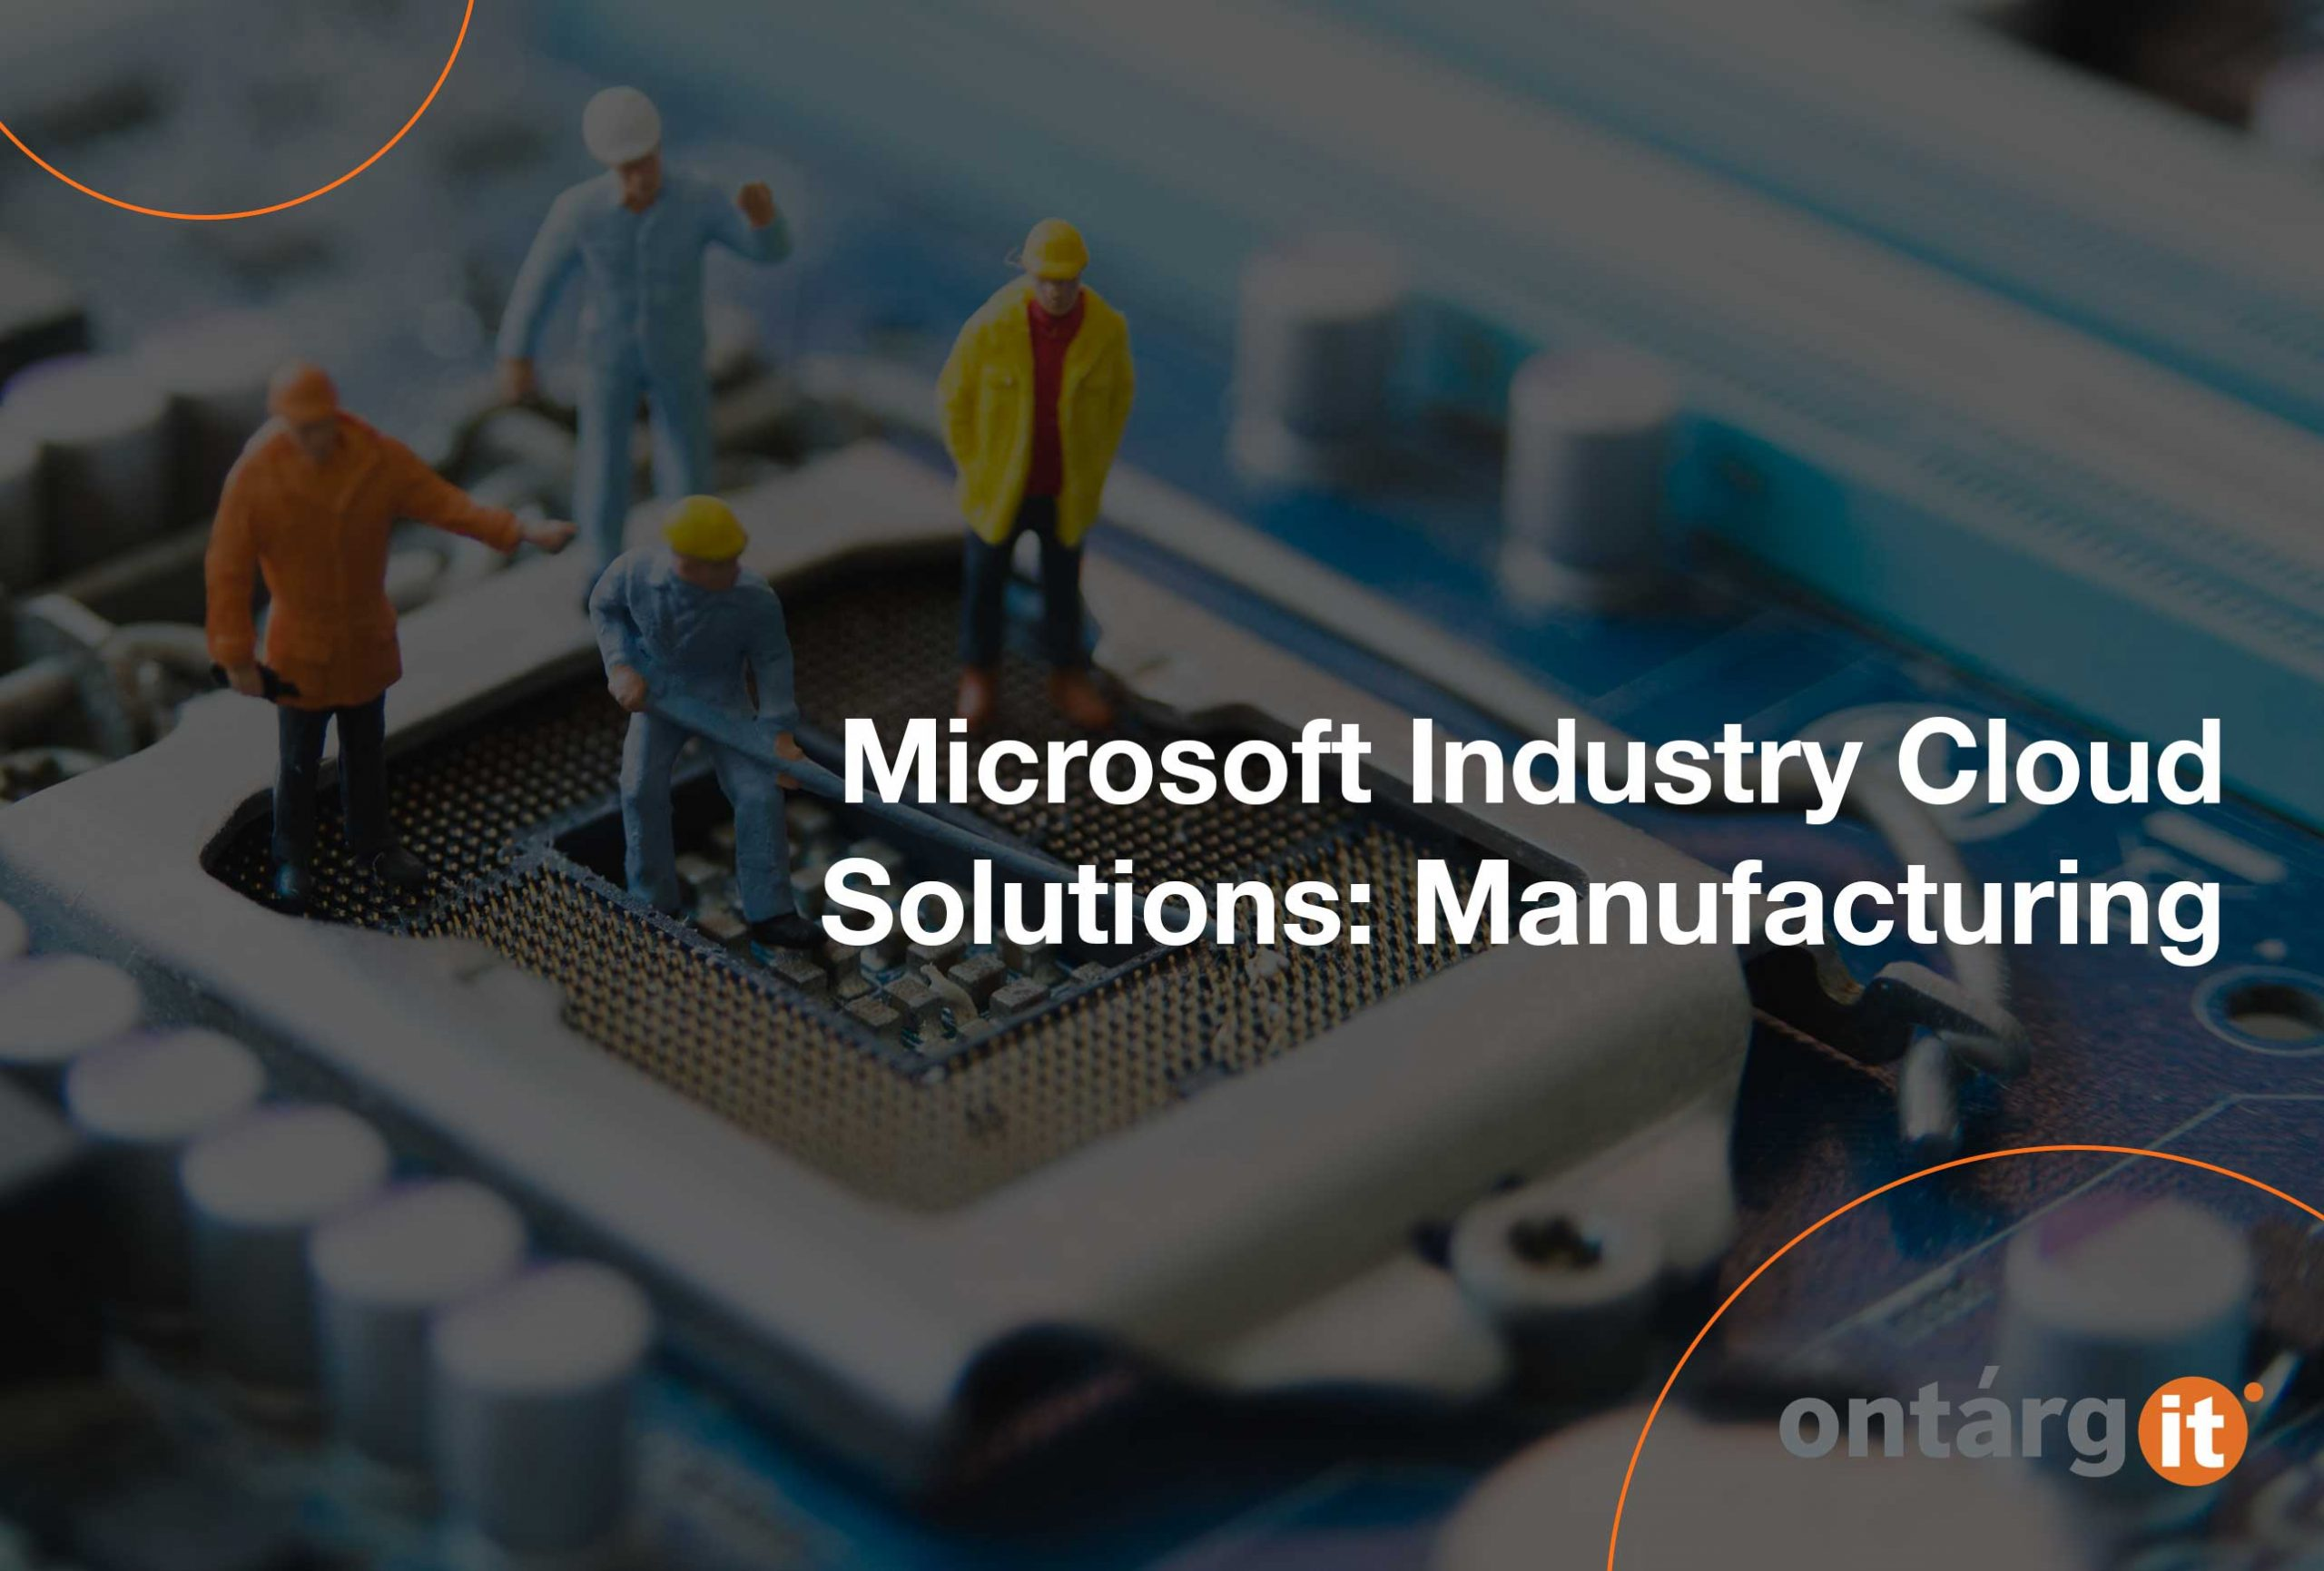 Microsoft-Industry-Cloud-Solutions-Manufacturing-cloud